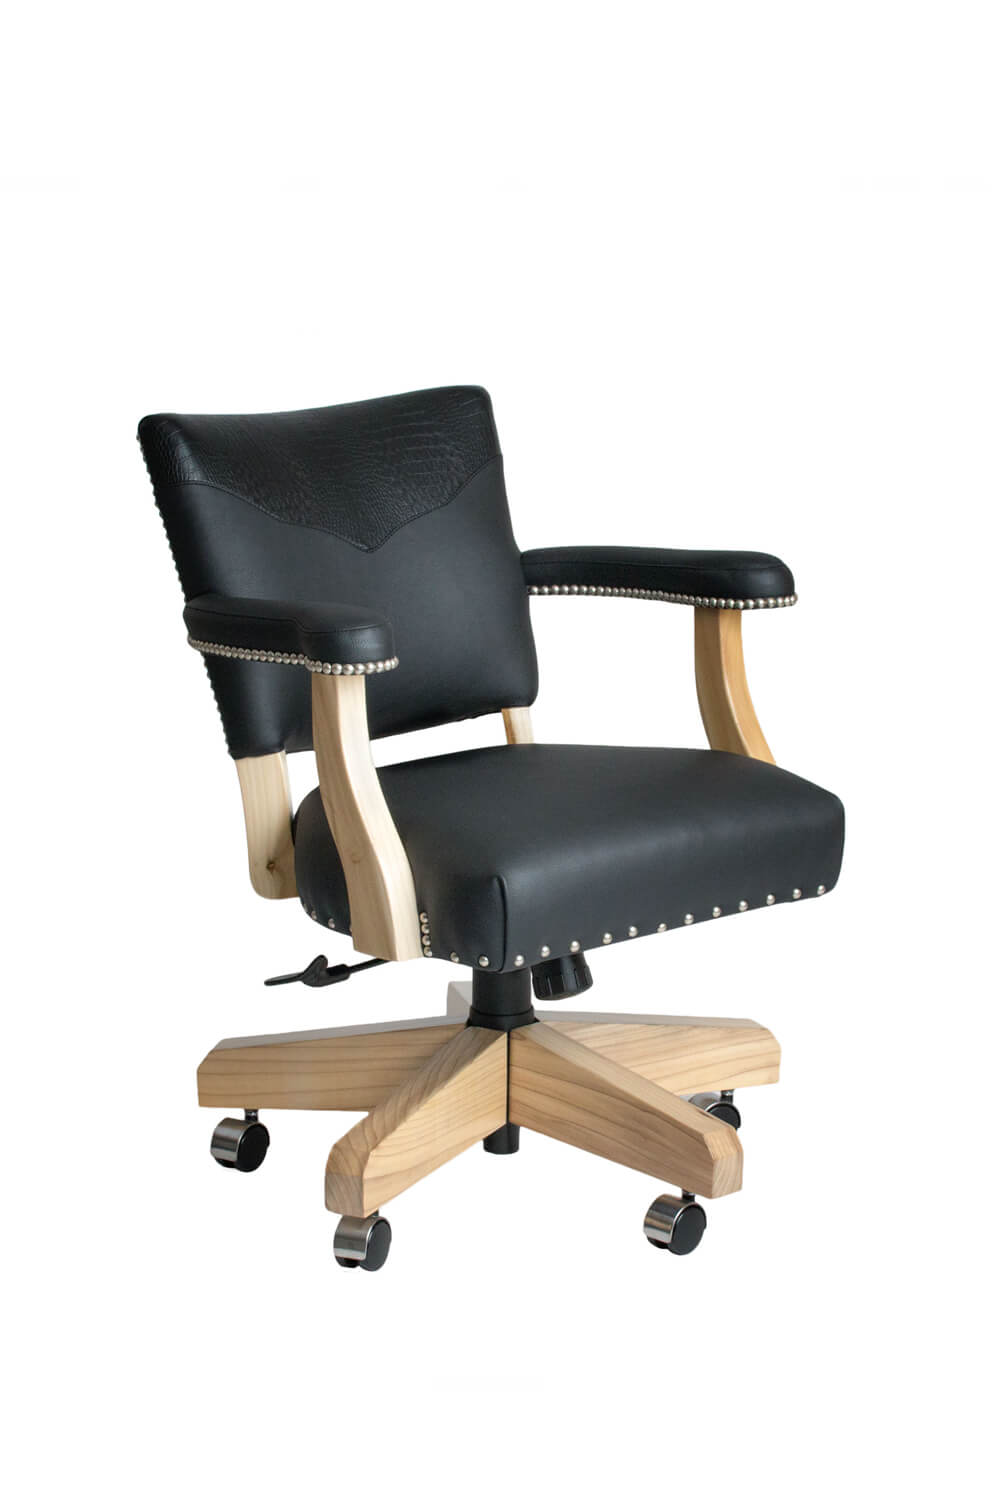 El Dorado Maple Adjustable Swivel Game Chair with Arms